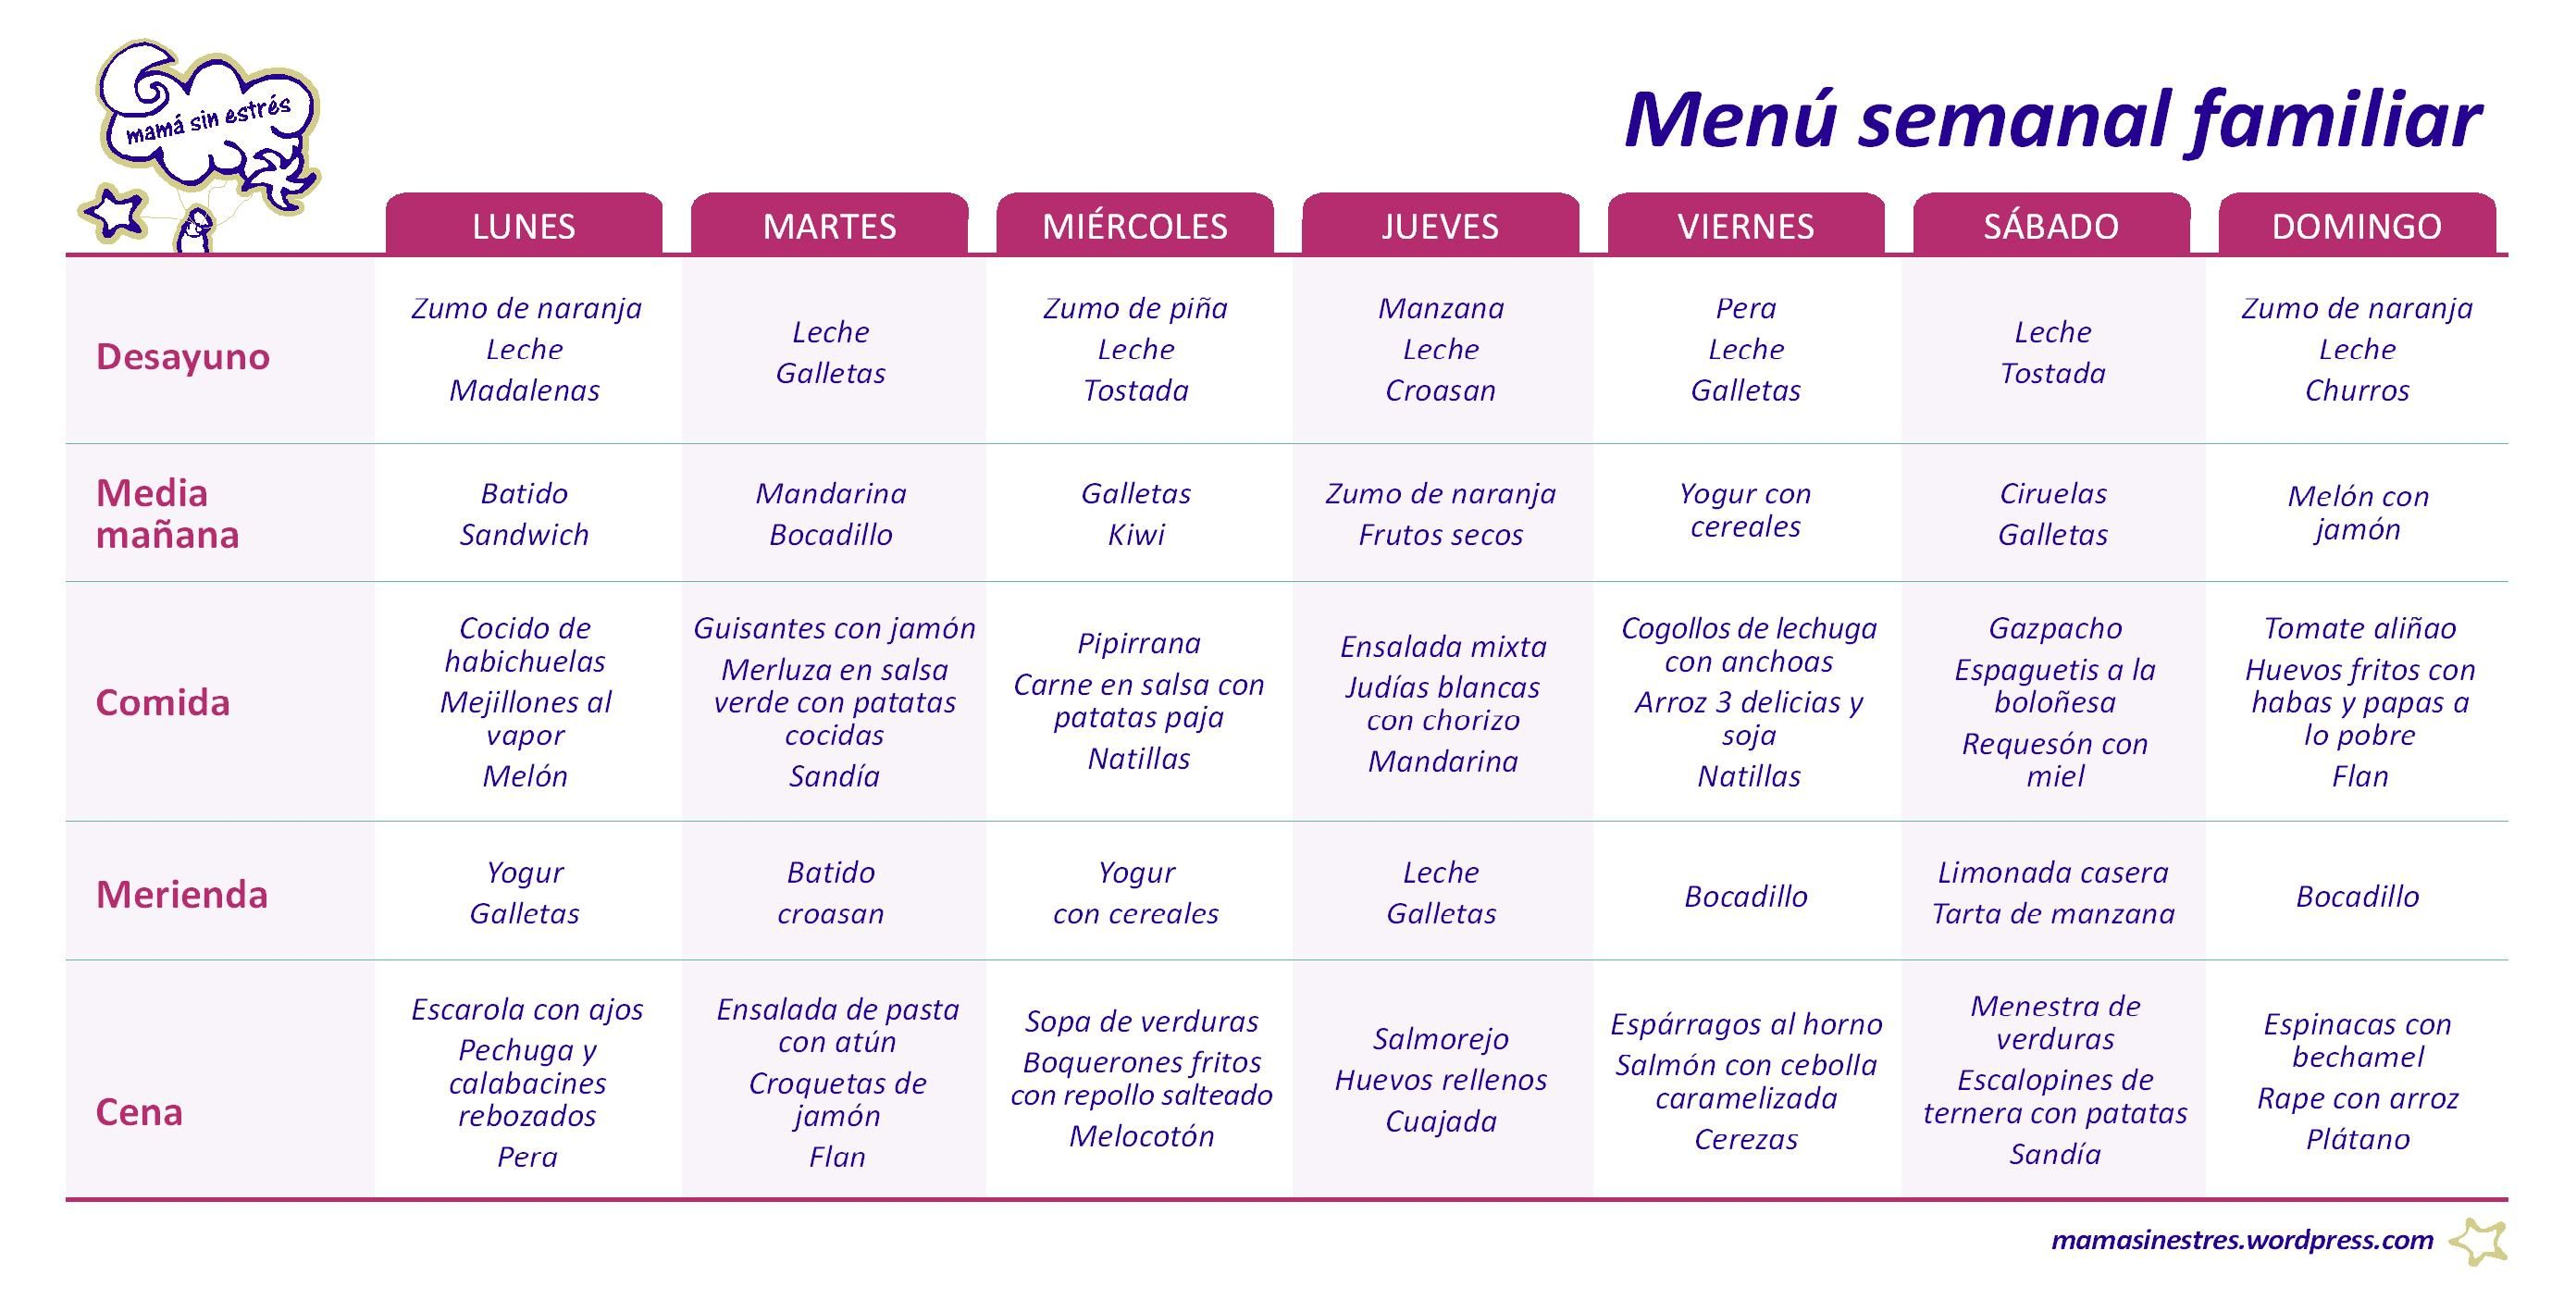 C mo elaborar un men semanal familiar men pinterest men semanal men and menu semanal - Comidas para cenas familiares ...